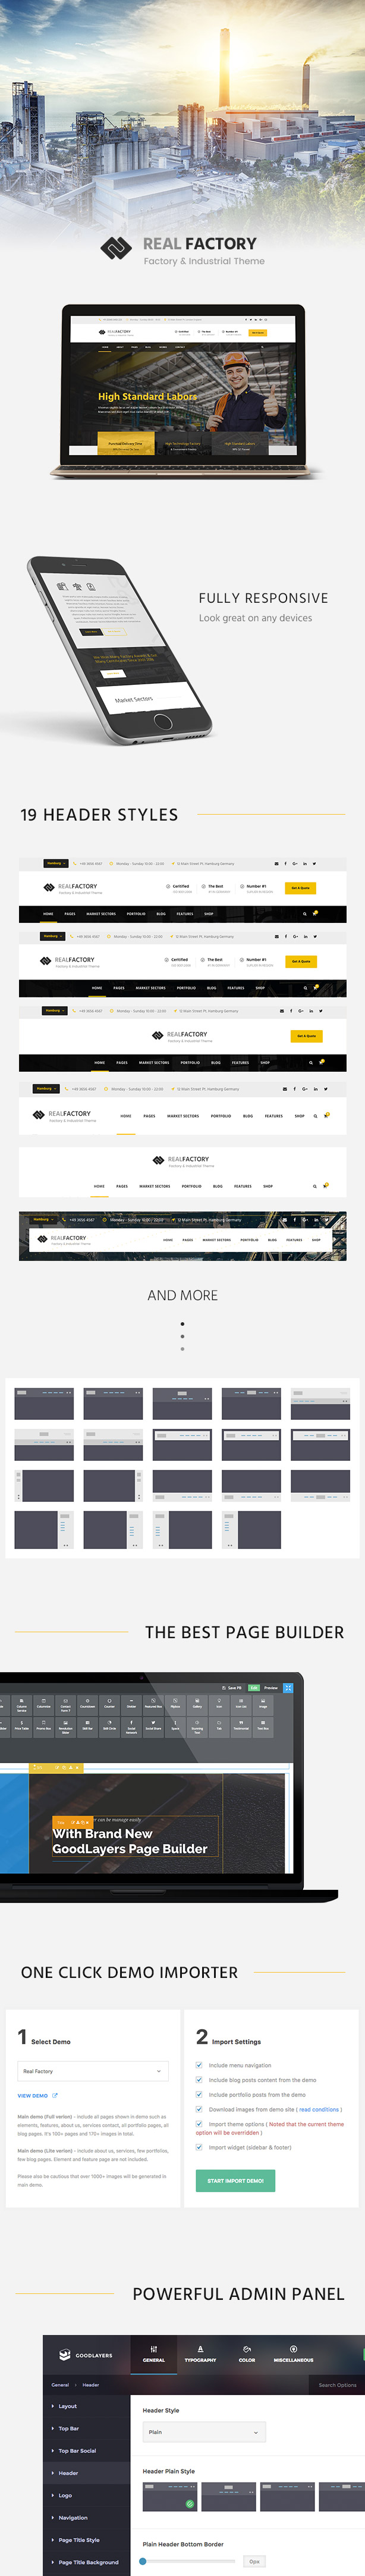 Construction WordPress Theme For Construction & Industrial Company   Real Factory - 1